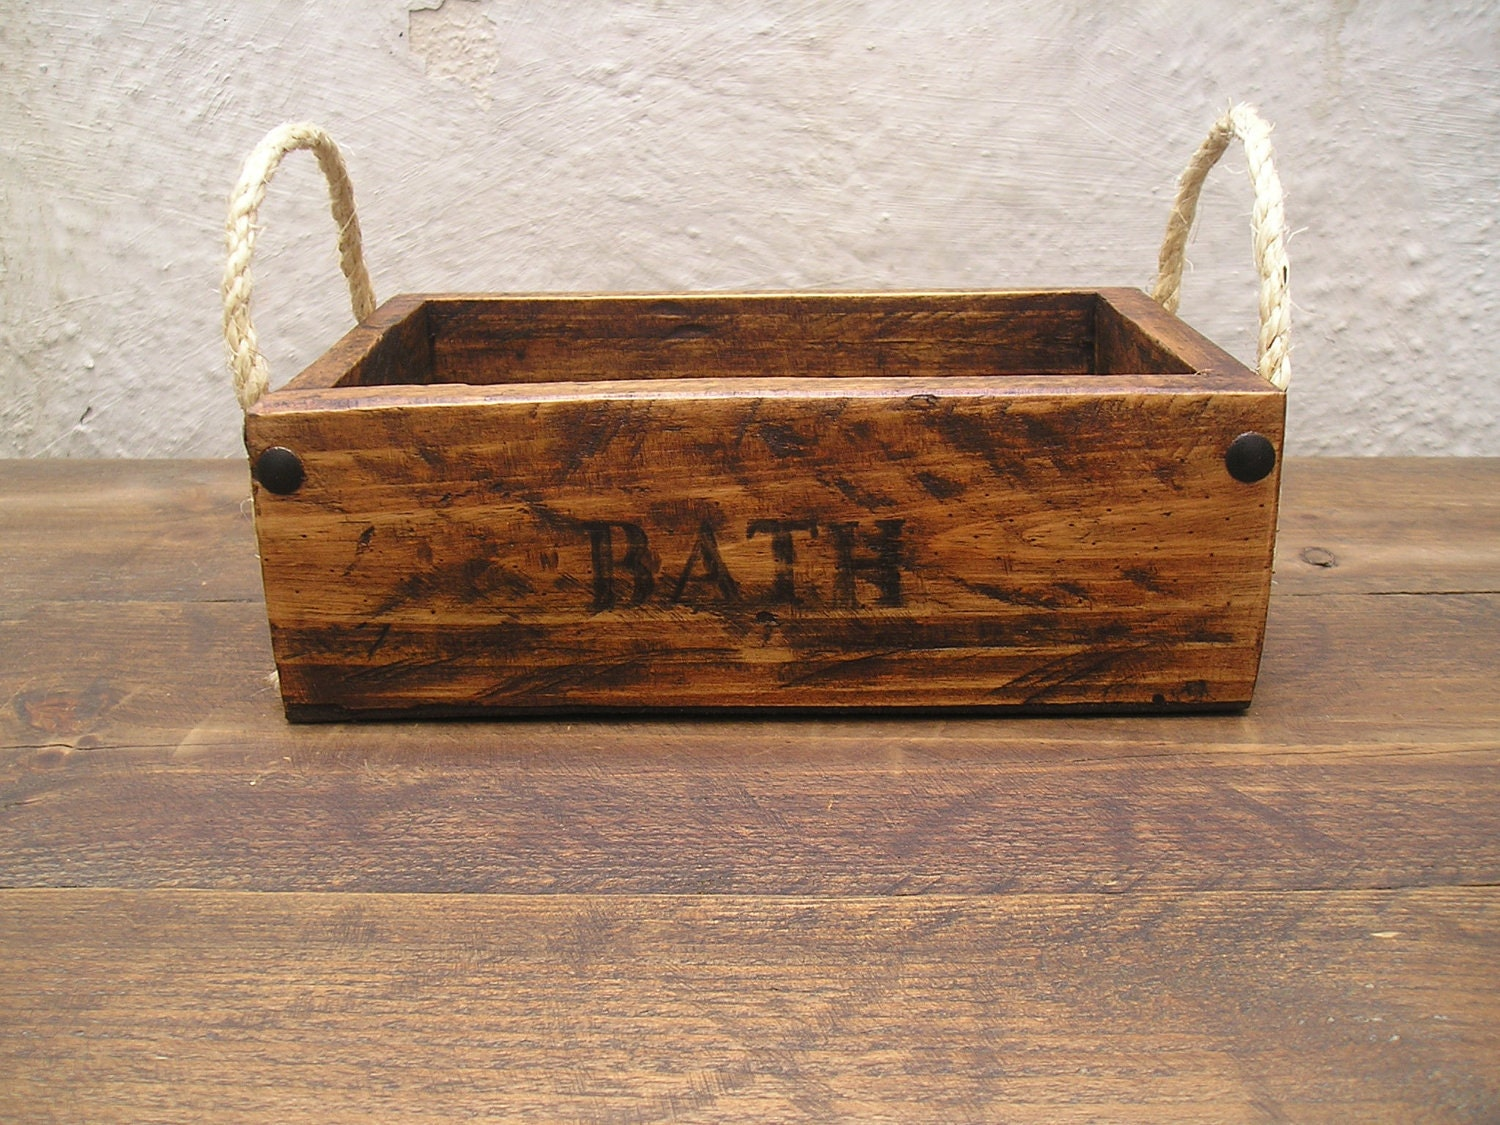 rustic wood bathroom accessories. handmade rustic wooden bathroom accessories  by regalosrusticos Bathroom decor Rustic Accessories laptoptablets us